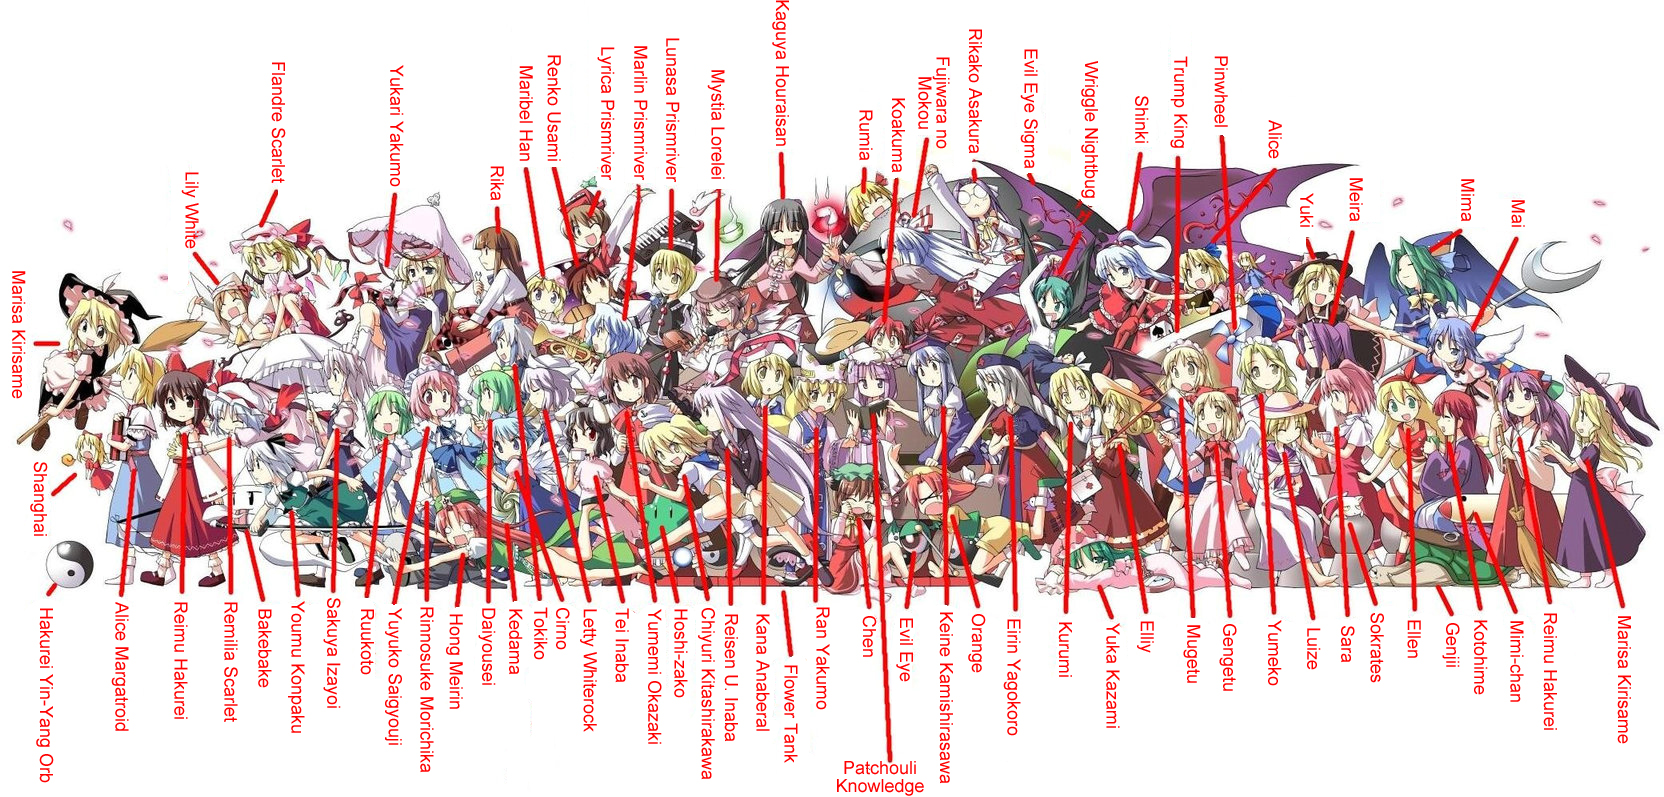 List of Touhou Project characters - Wikipedia